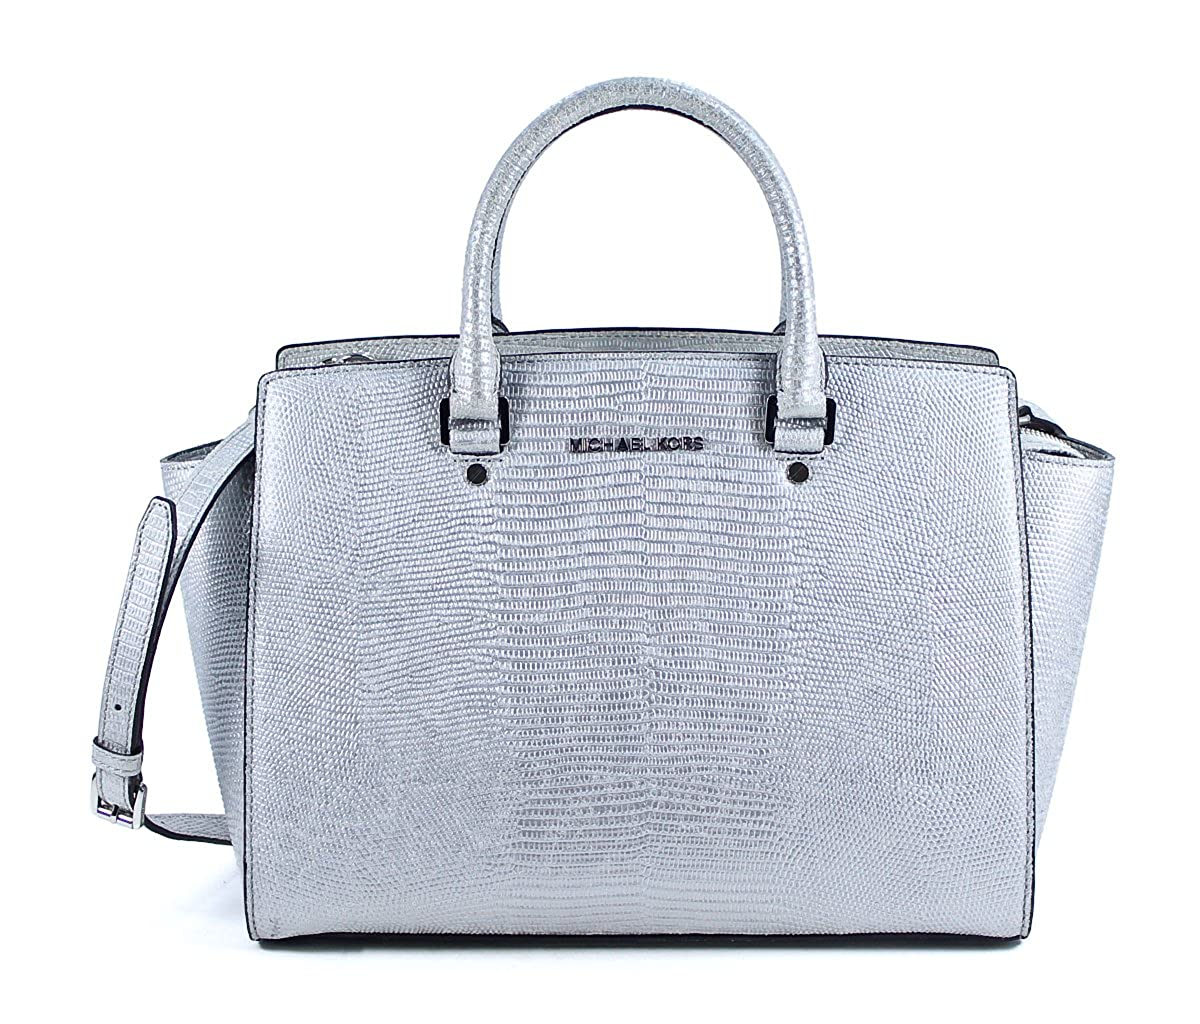 bf301c5d4 Amazon.com: Michael Kors Selma Large Top Zip Satchel Silver Leather  Shoulder Bag Purse: Shoes